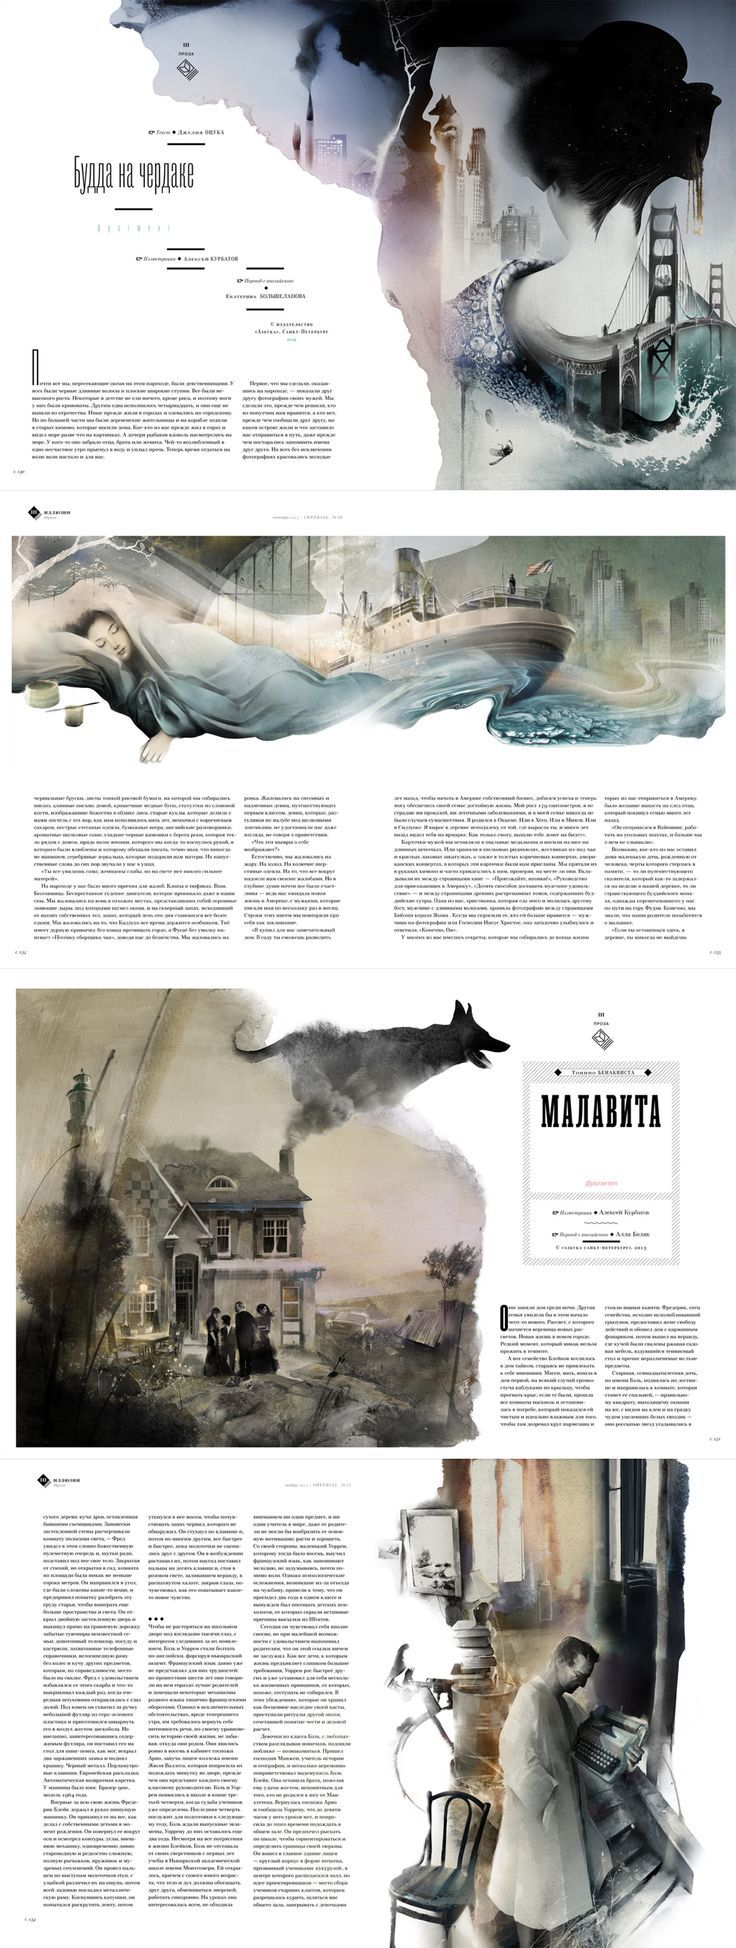 Amazing grid layout design. One of my favorite layout idea as its no even but still simple. Overlapping of text grids and the painted images is the fascinating part of this layout.